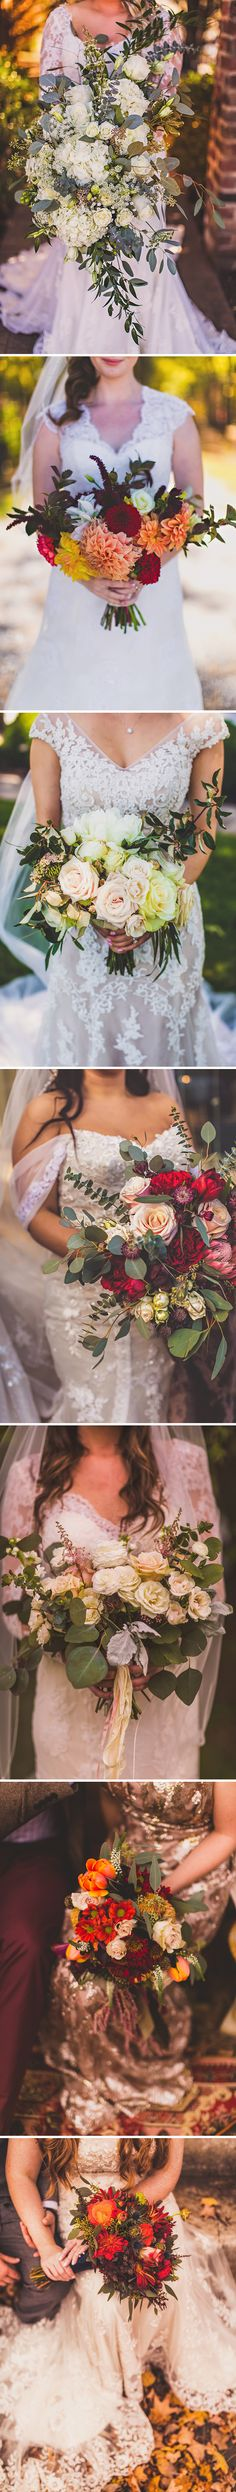 Wedding Bouquets | Virginia Wedding Photographer